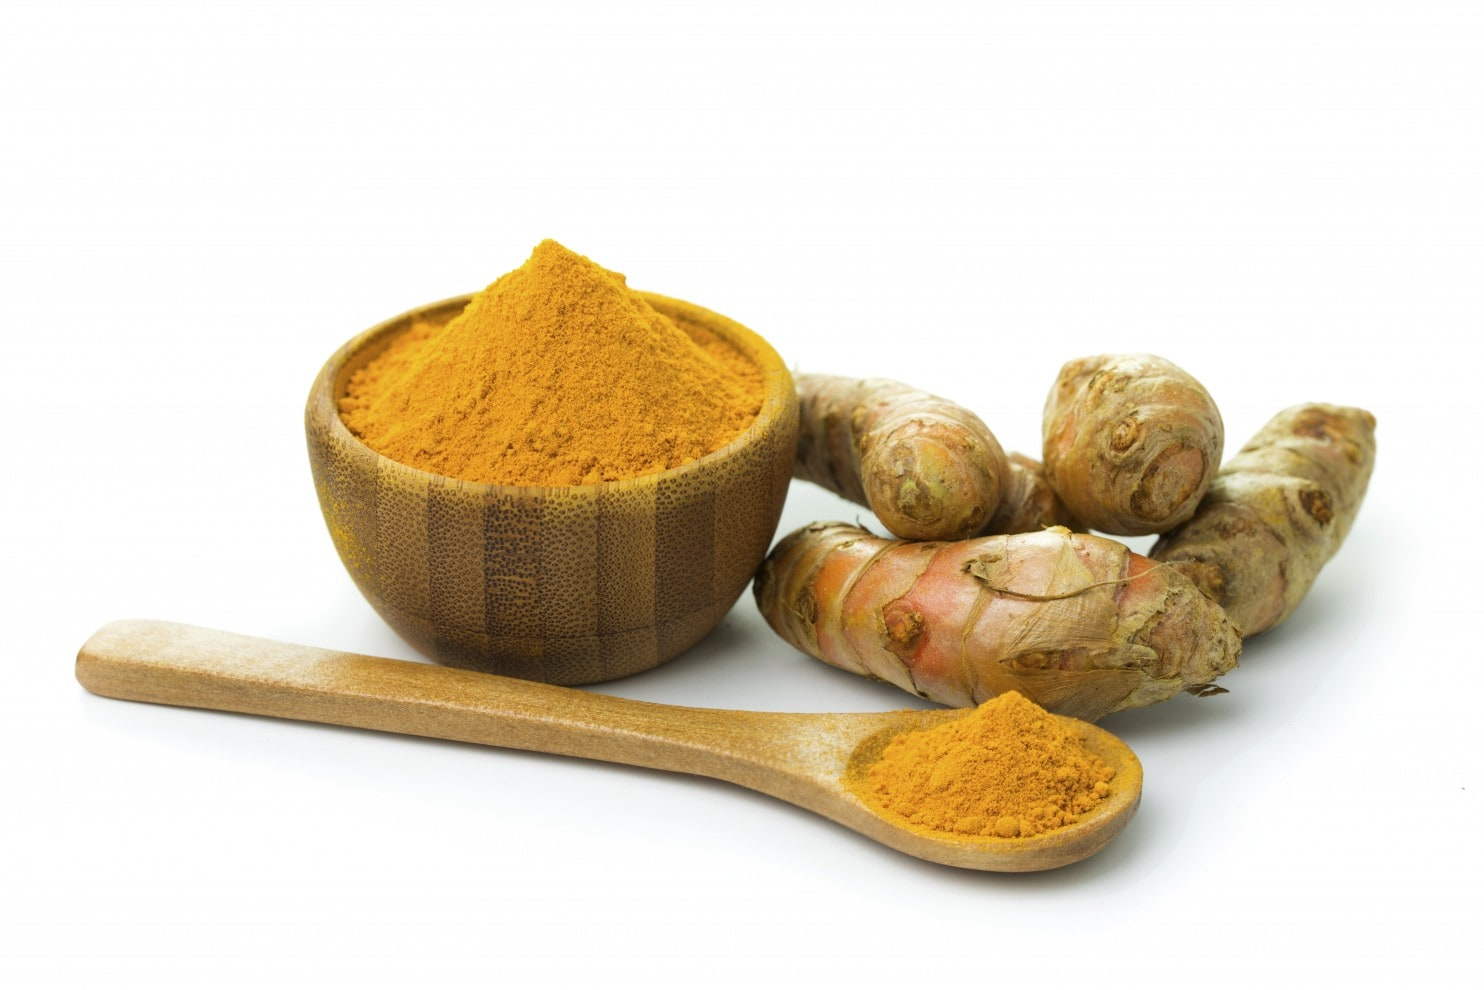 Turmeric-stock-photo-from-The-Washington-Post.jpg